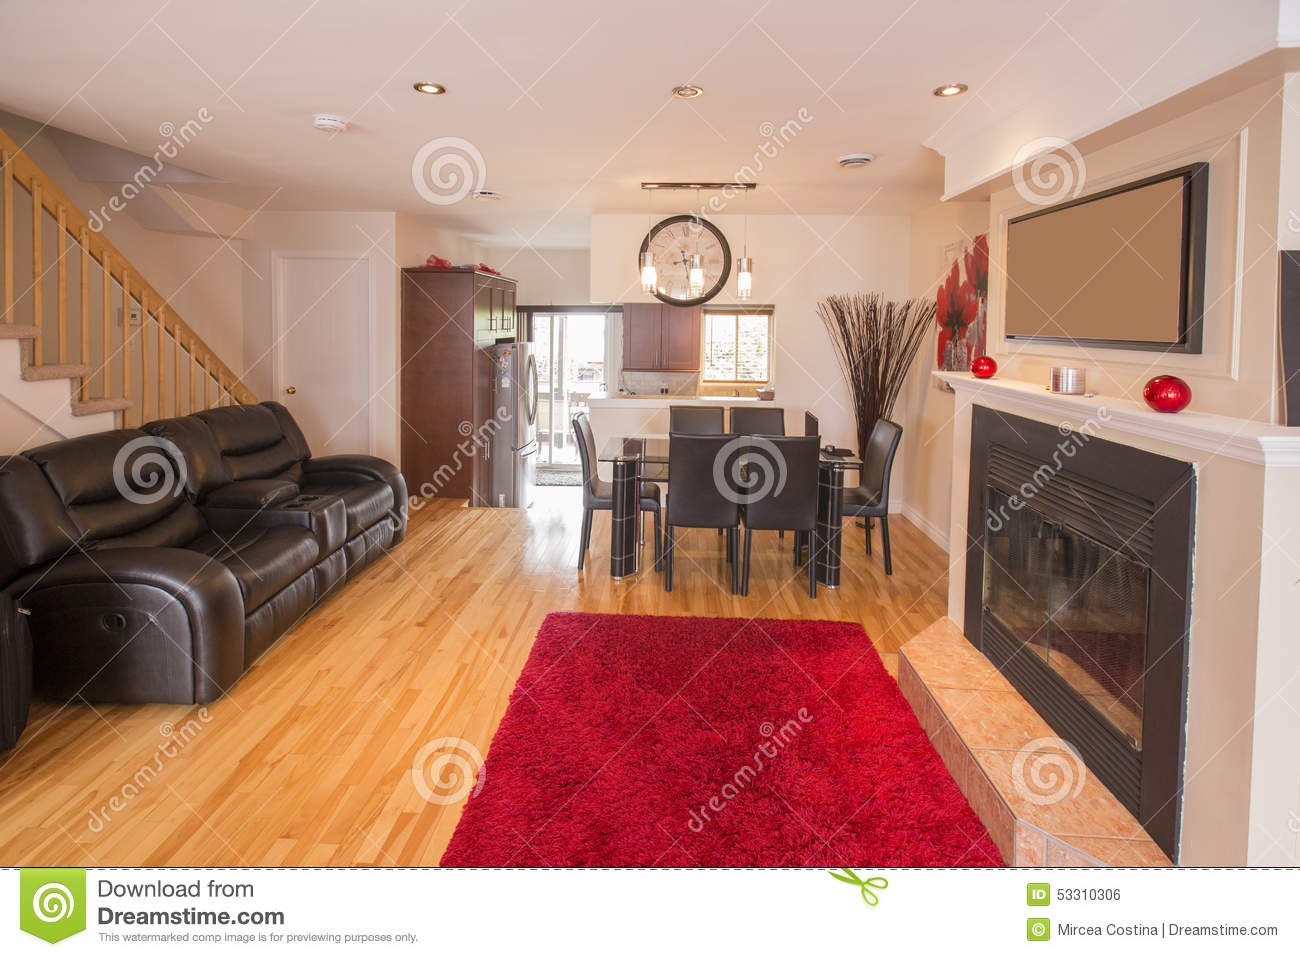 Salon Rouge Et Gris Photo Stock Image 53310306